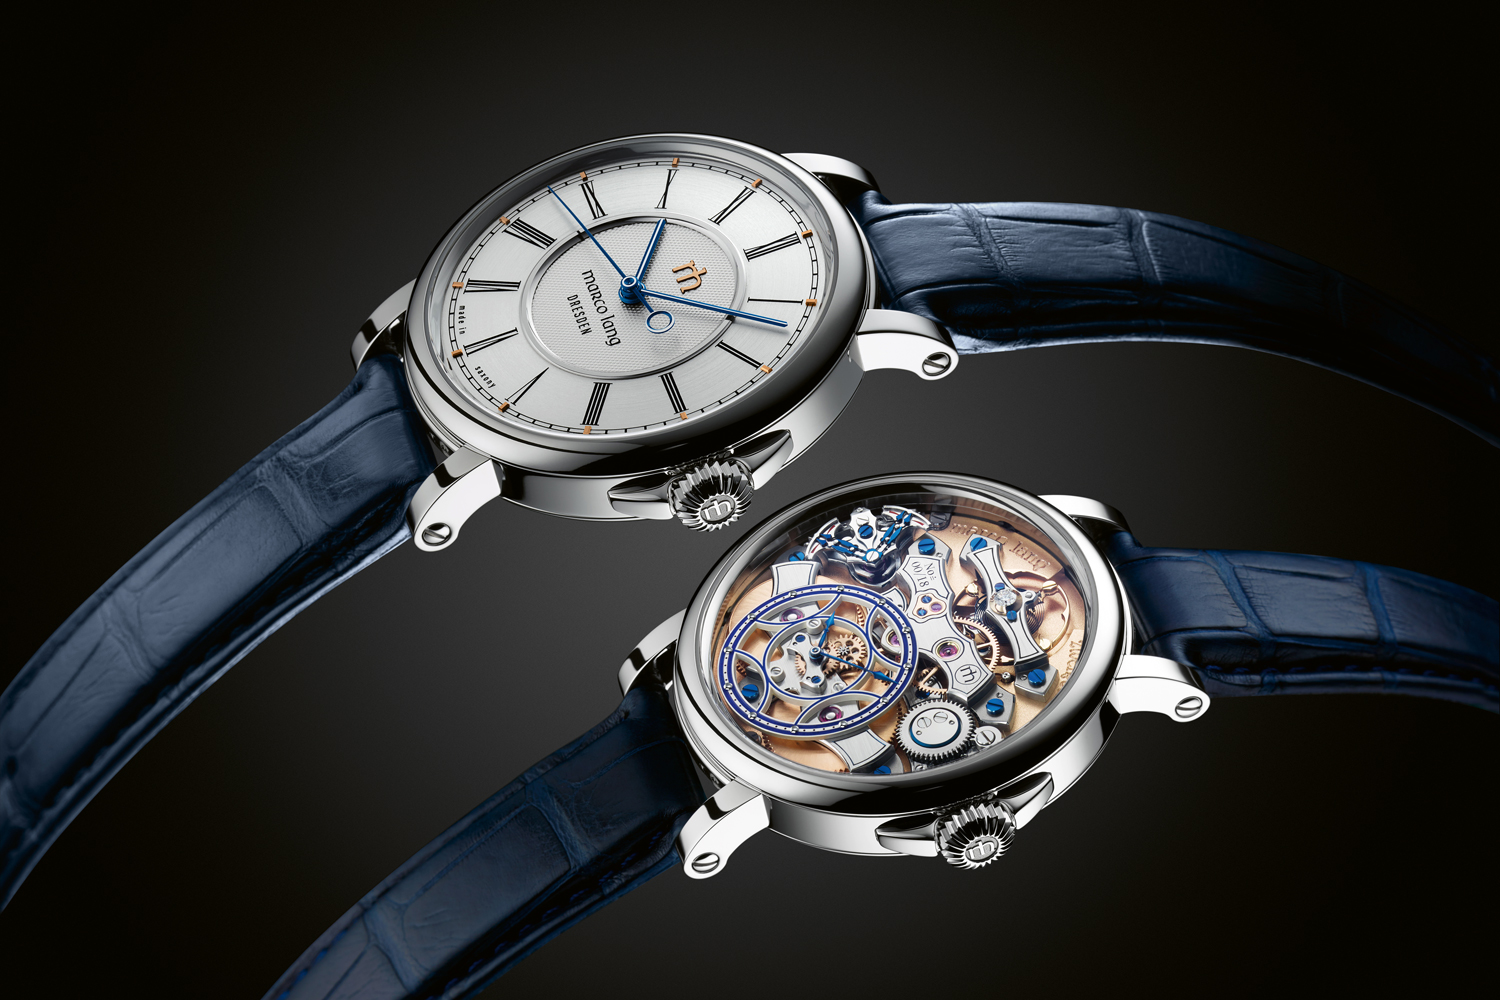 The Zweigesicht-1 allows the exquisitely finished movement to be turned around via removable lugs and reversible strap.